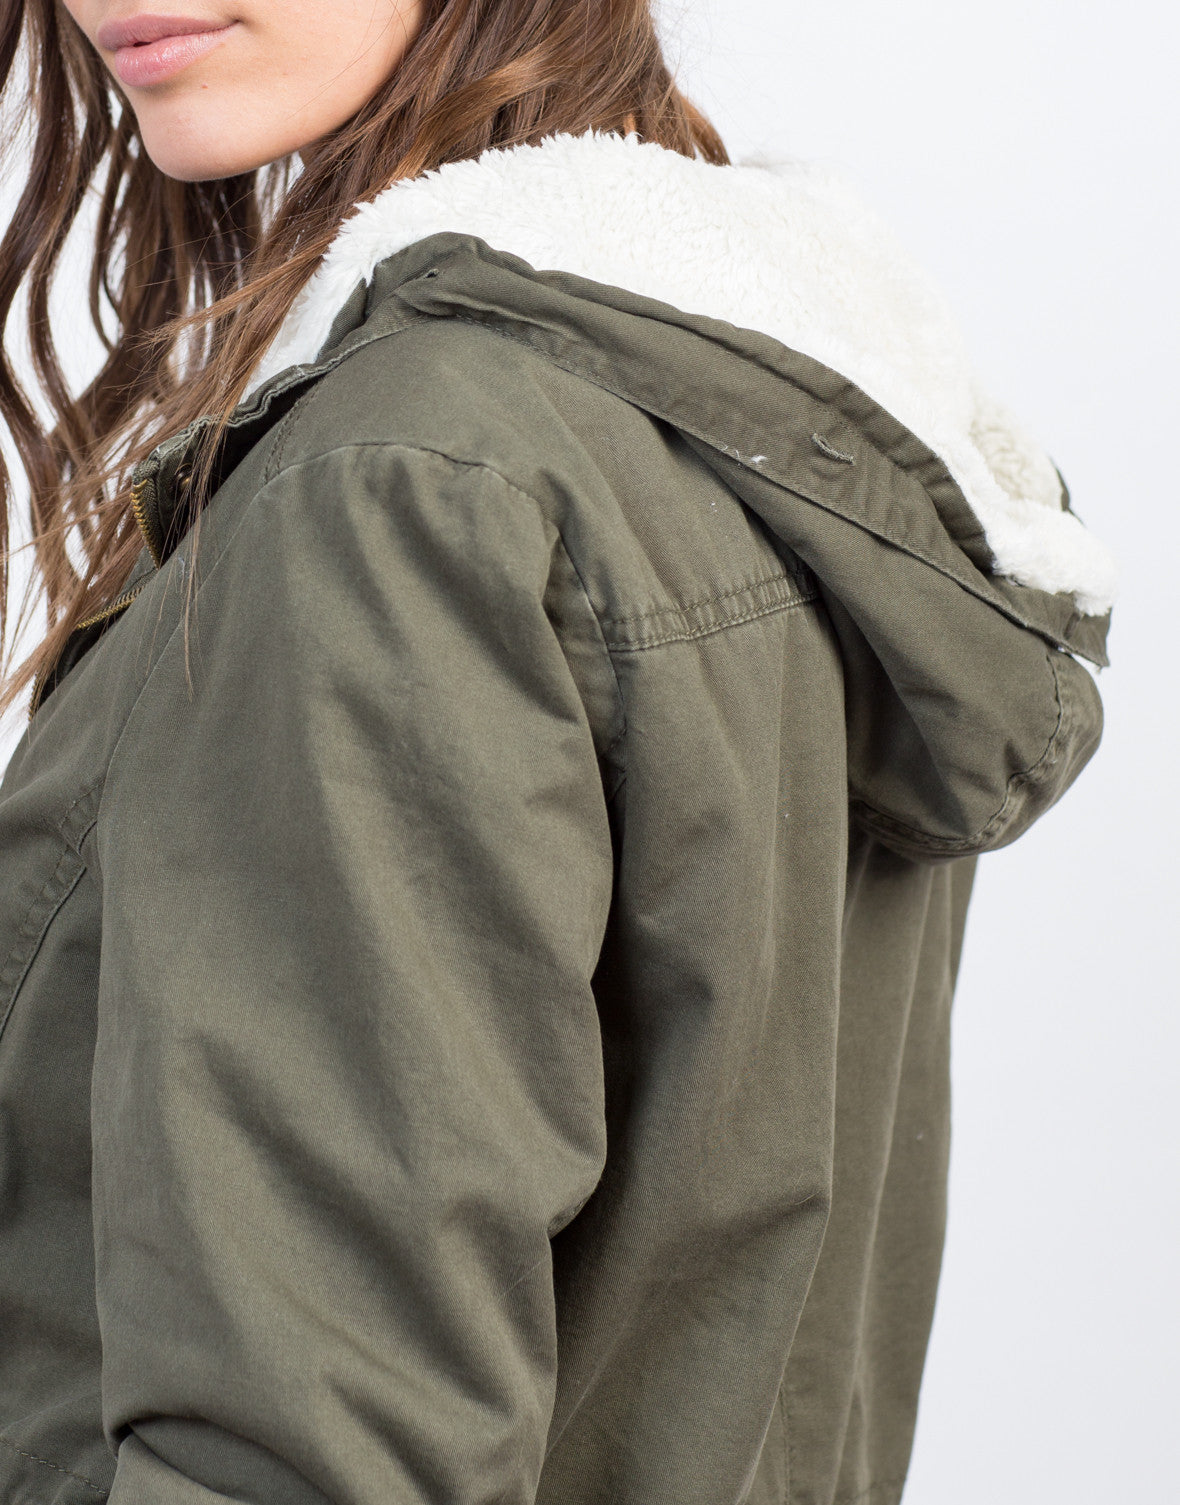 Detail of View of Furry Hooded Military Jacket